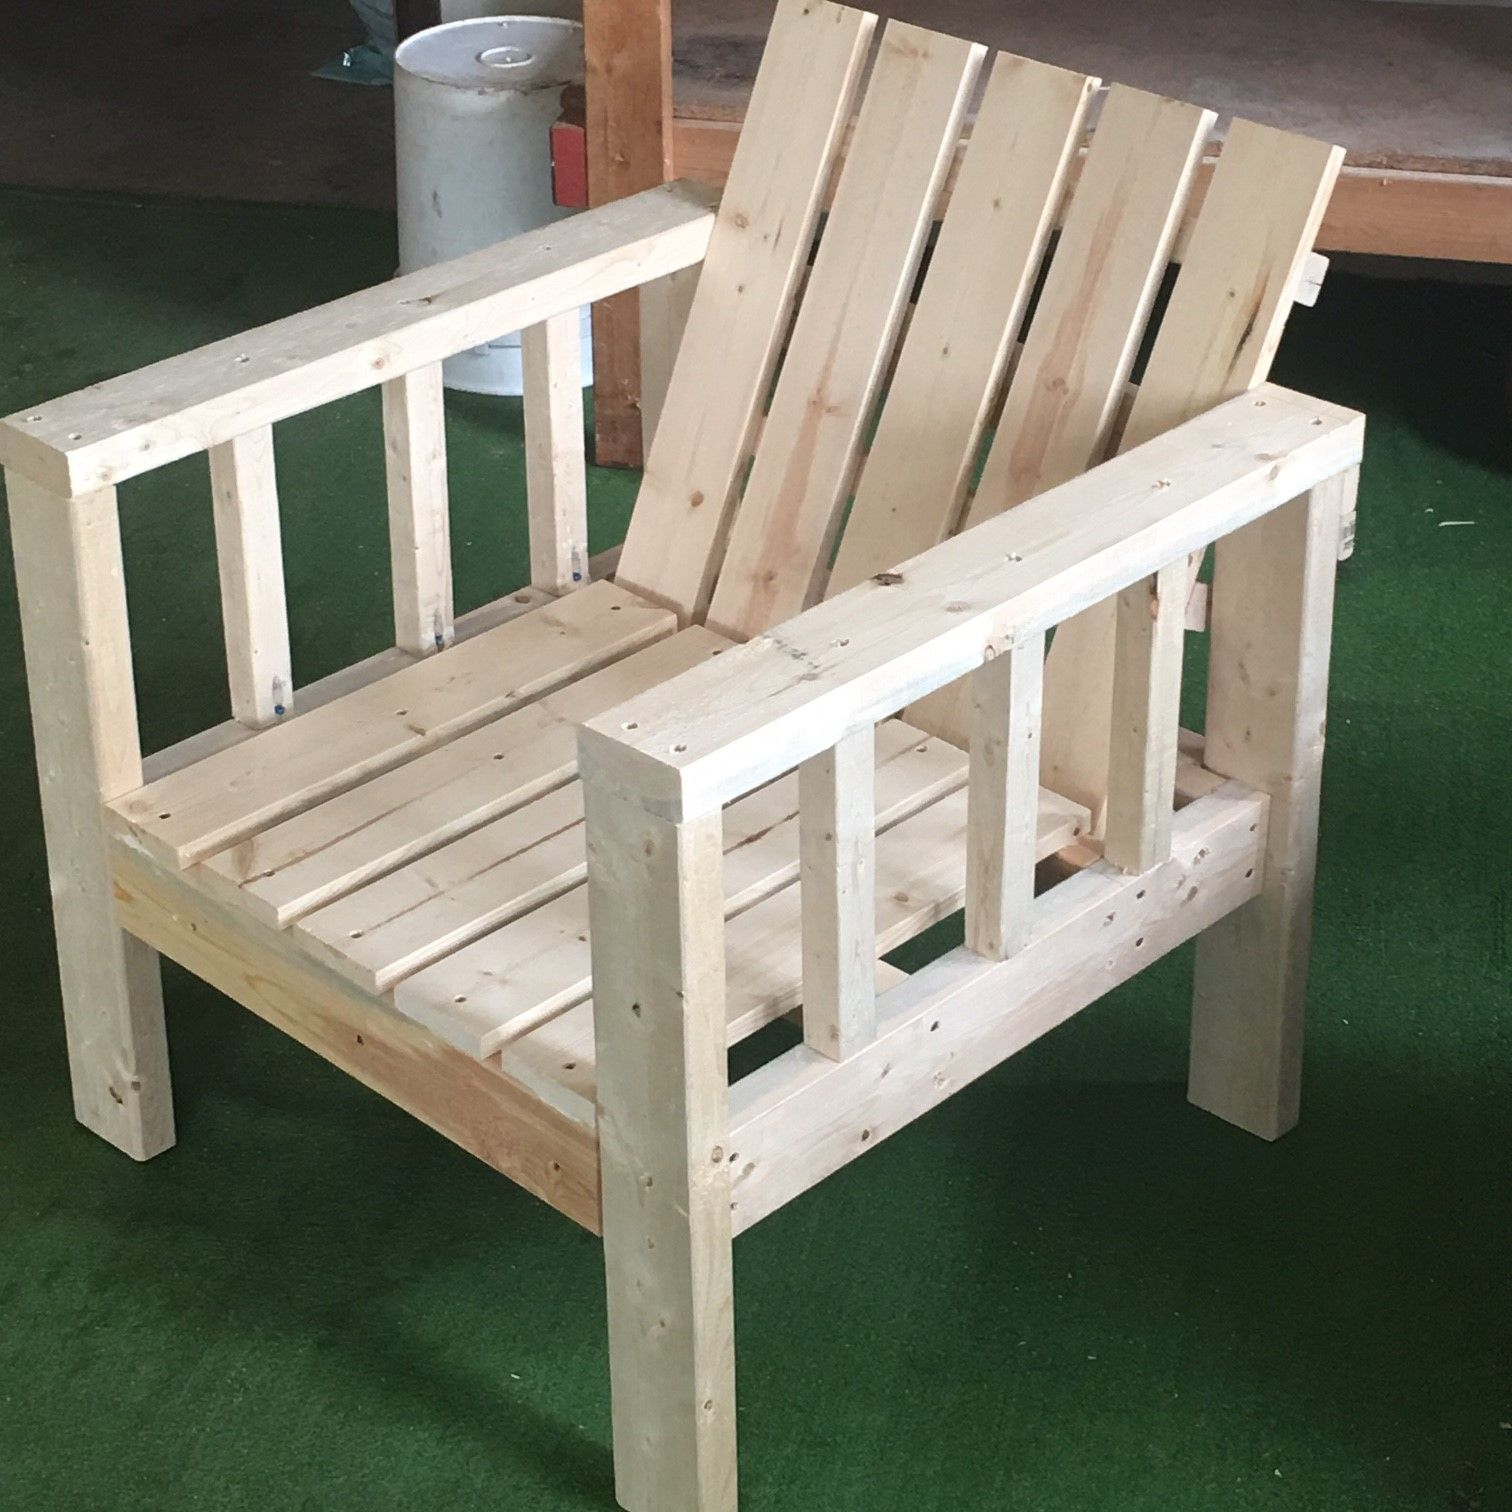 Outdoor wooden lounge chairs - My Simple Outdoor Lounge Chair With 2x4 Modification Do It Yourself Home Projects From Ana